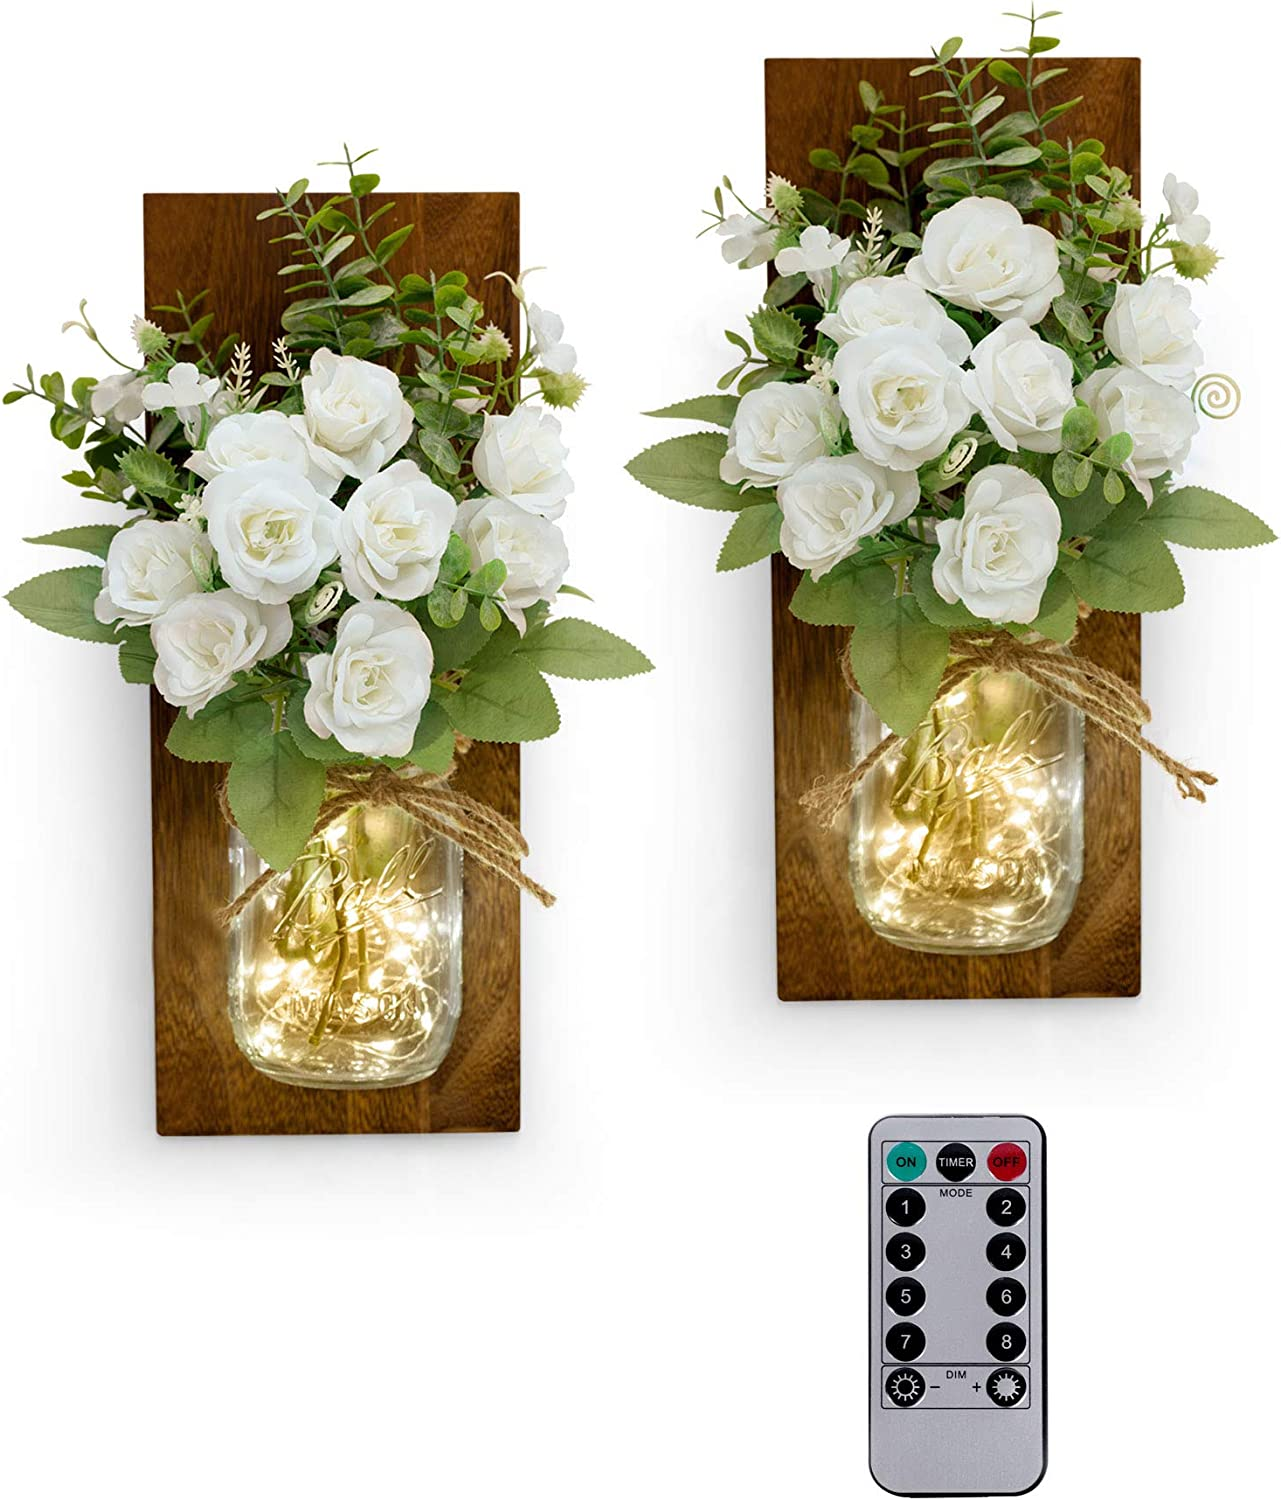 RS Sunlight Rustic Mason Jar Wall Sconce with String LED Lights - Farmhouse Wall Decor for Bedroom Living Room Bathroom -Two Remote Controls - White Rose Bouquet- (Set of 2)